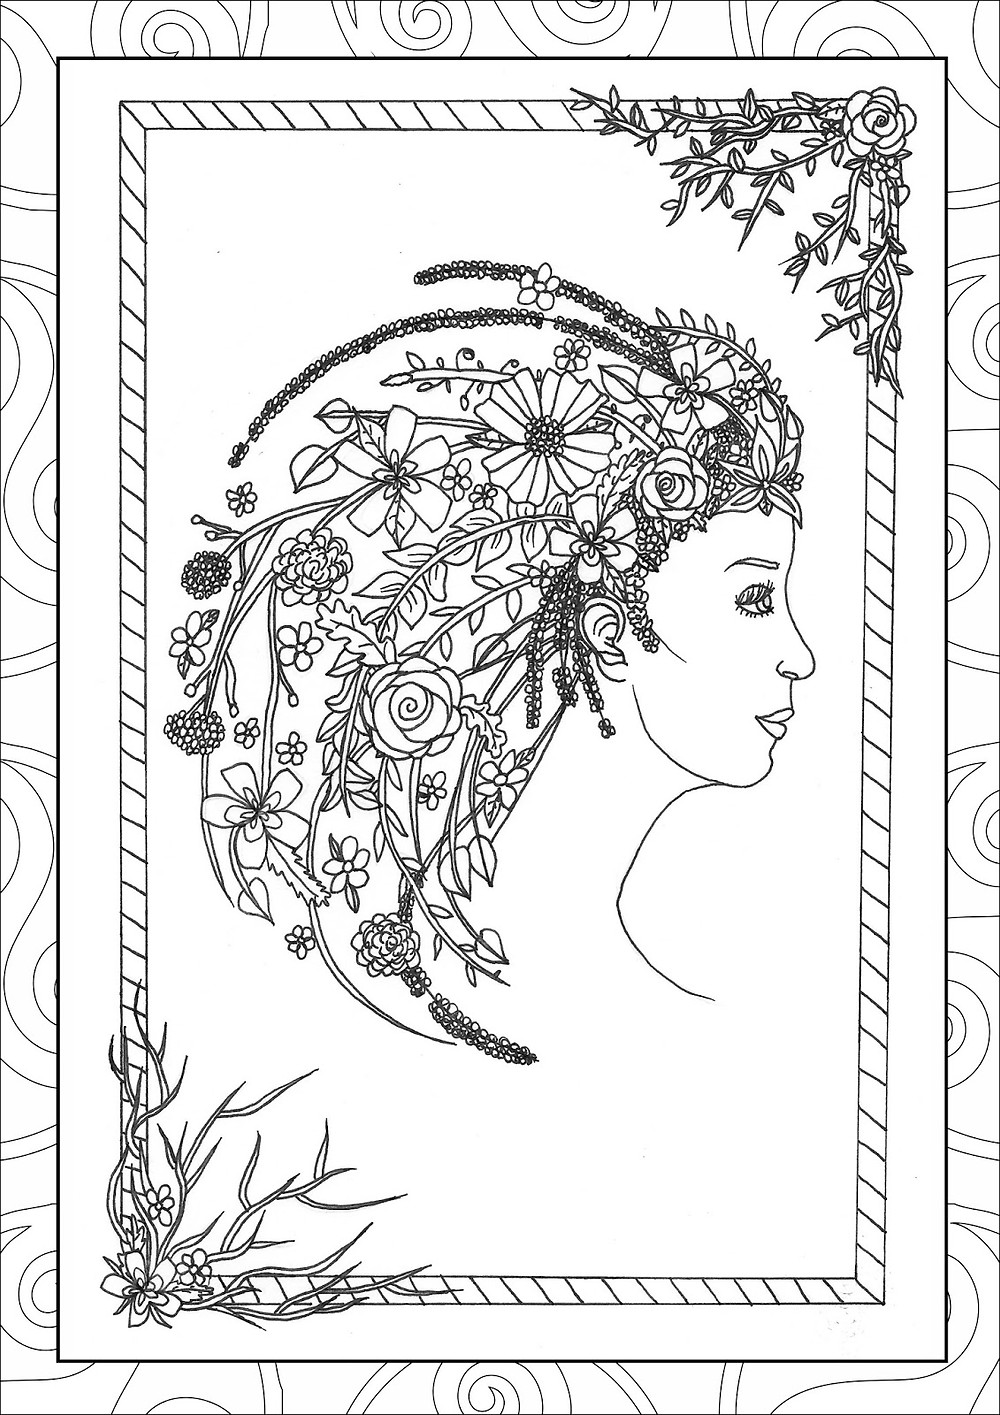 Blodeuwedd from the Gods & Goddesses Colouring book